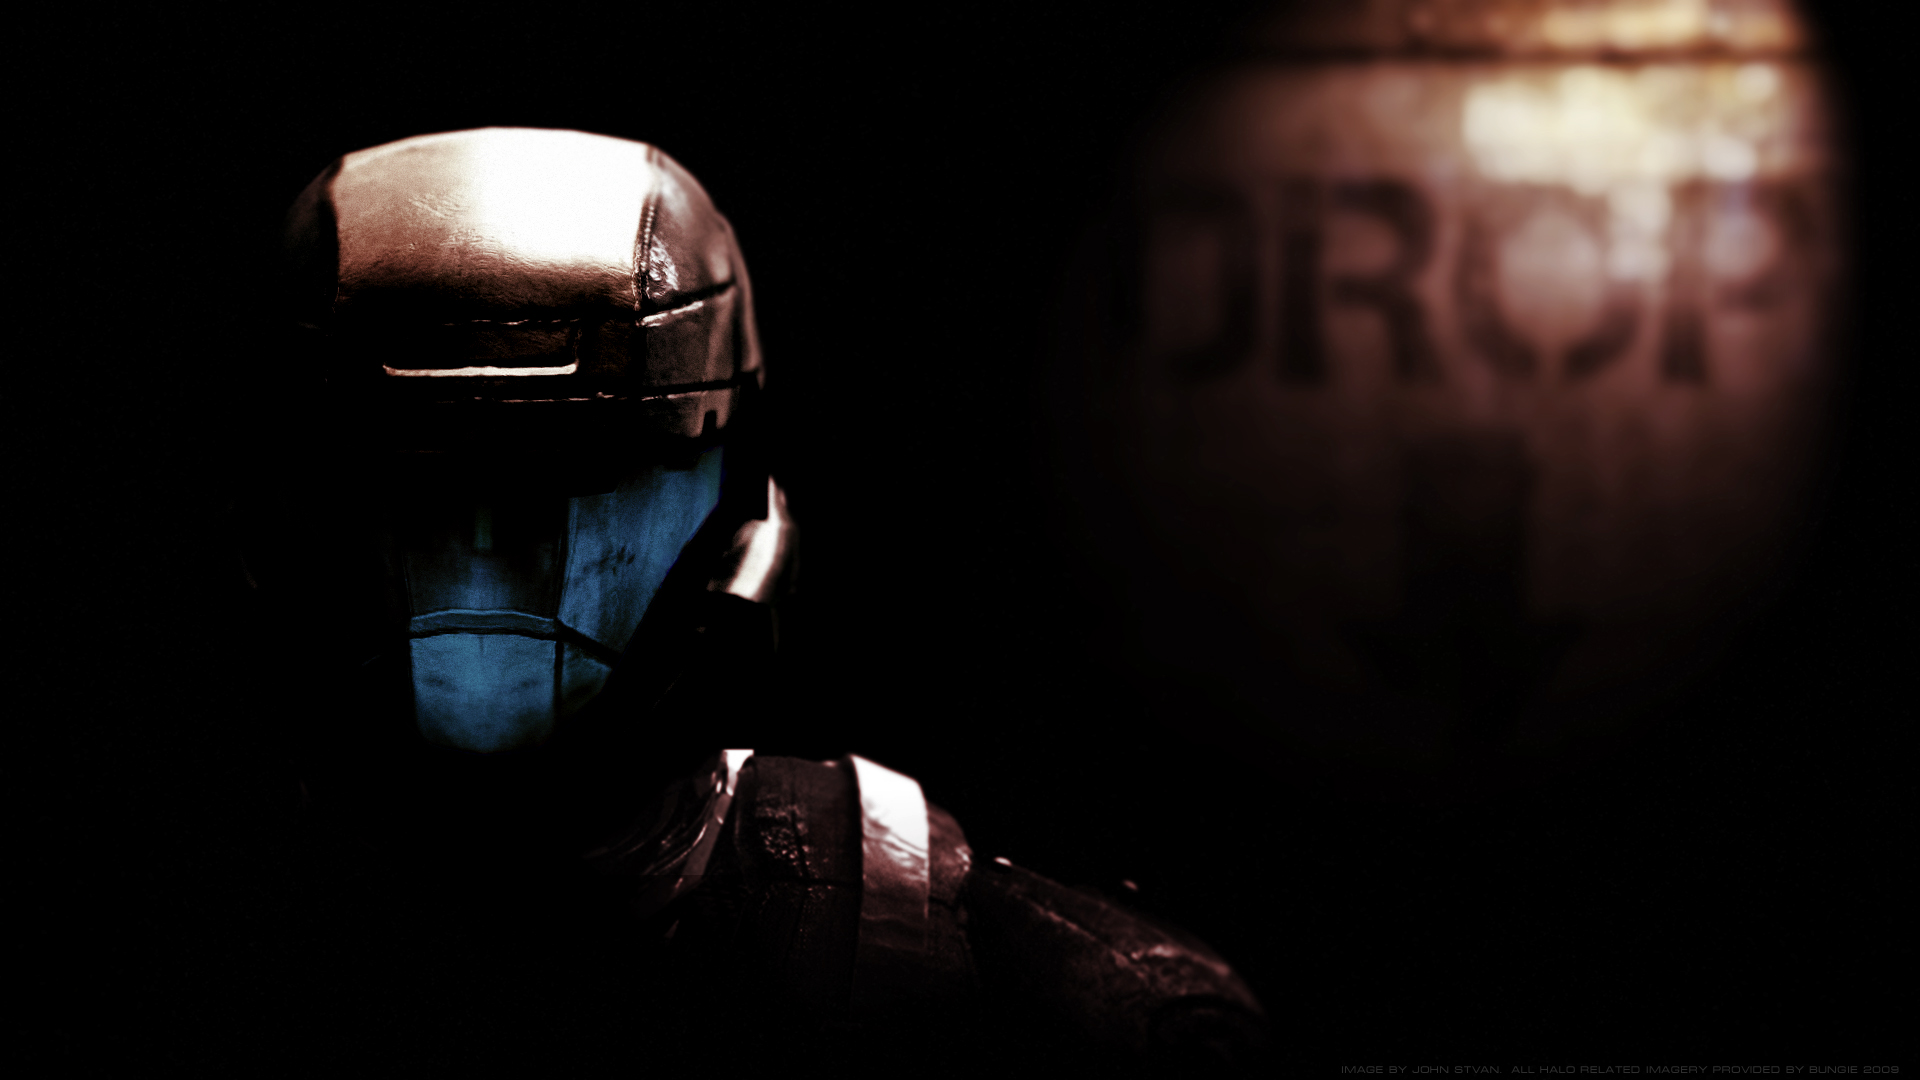 halo 3: odst hd wallpaper | background image | 1920x1080 | id:25